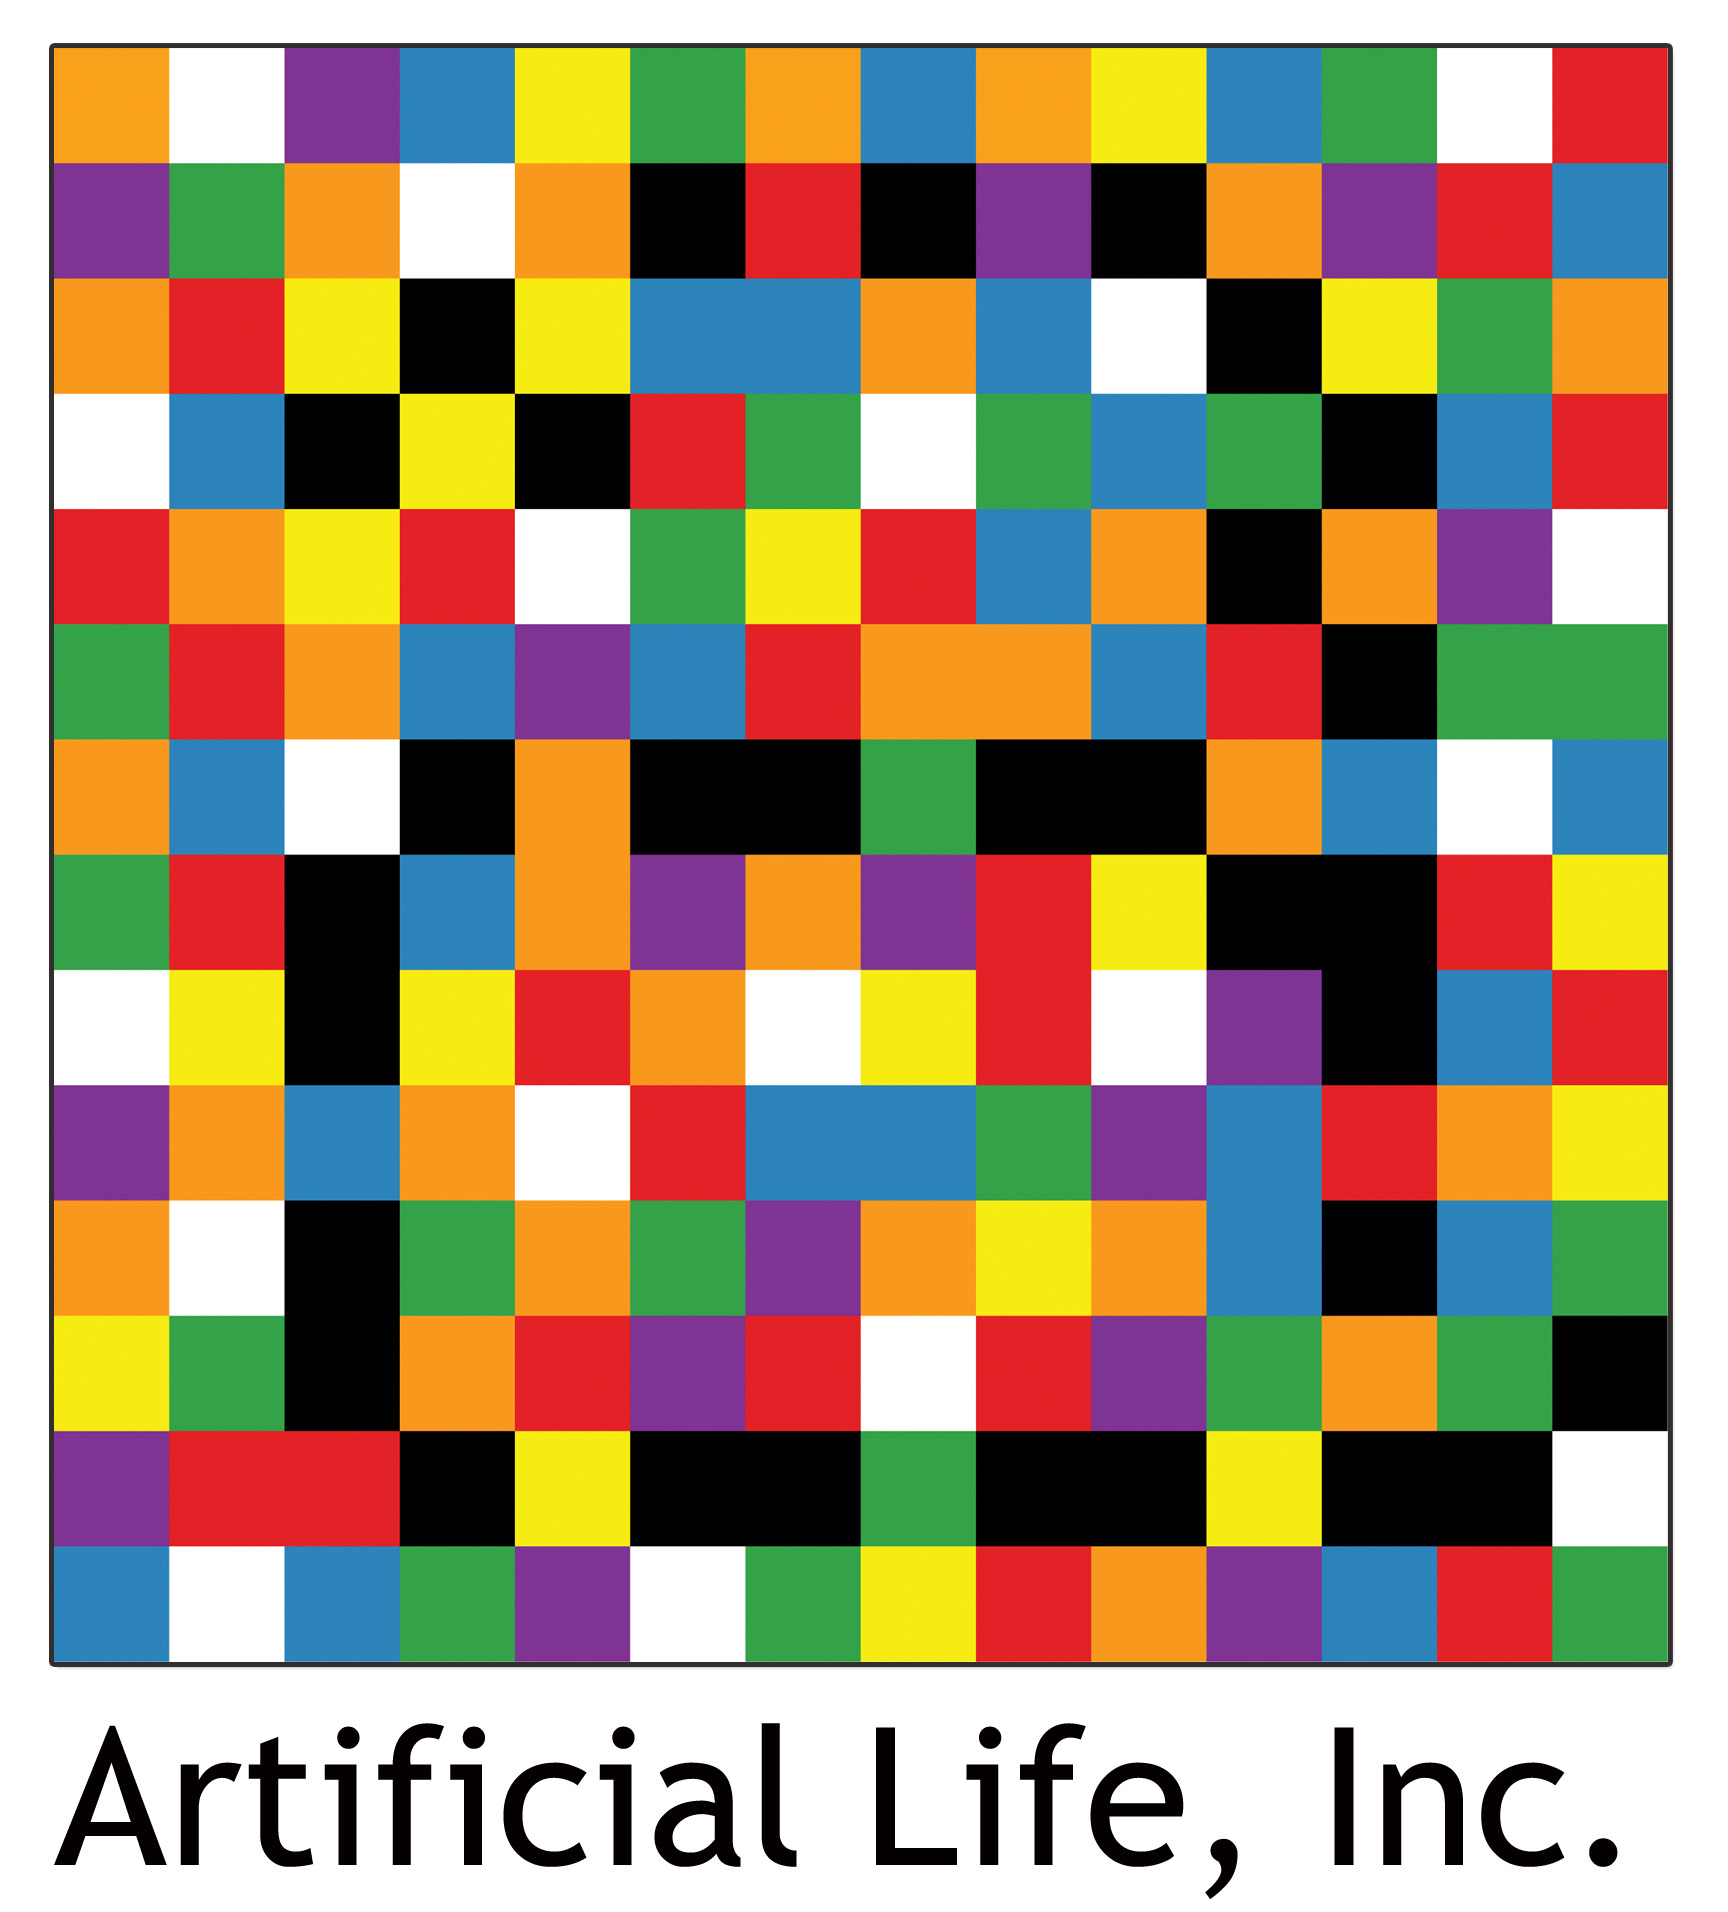 Artificial Life, Inc